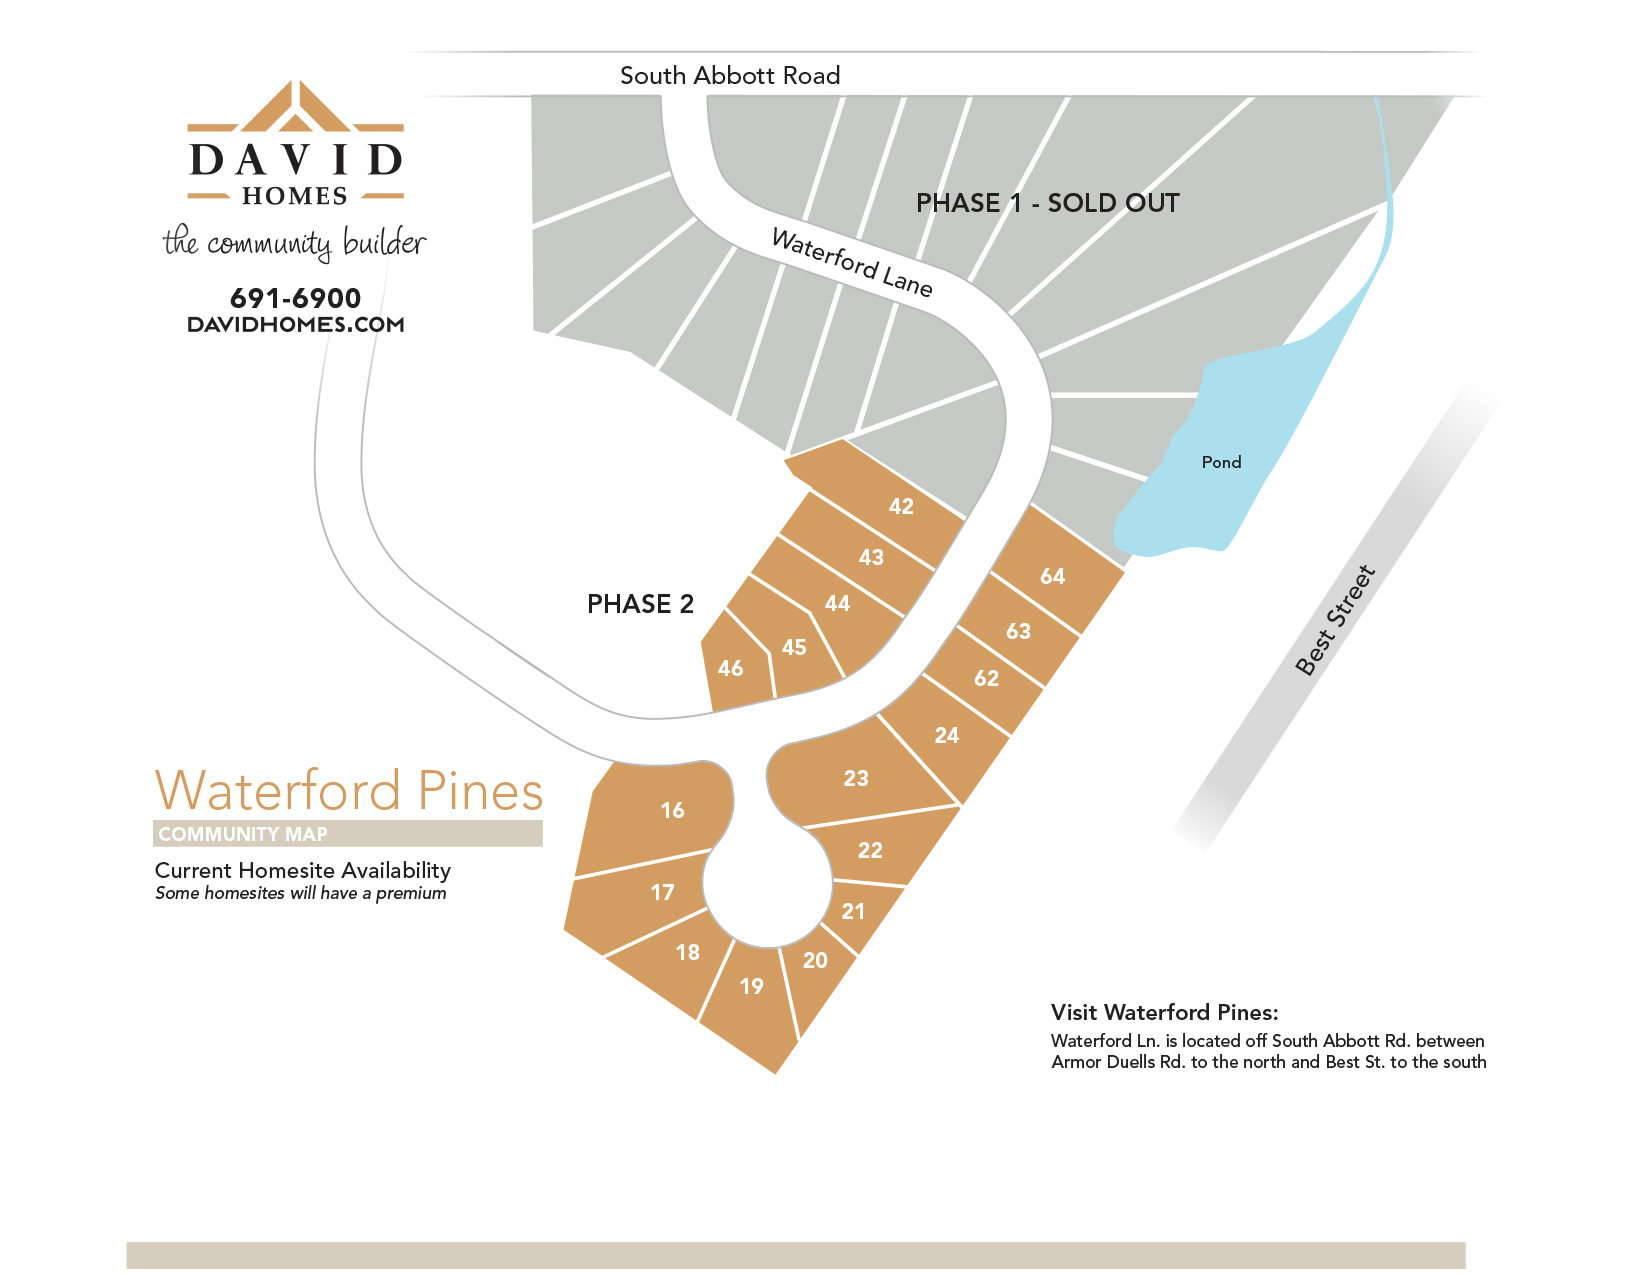 Waterford Pines Homesite map -click to view